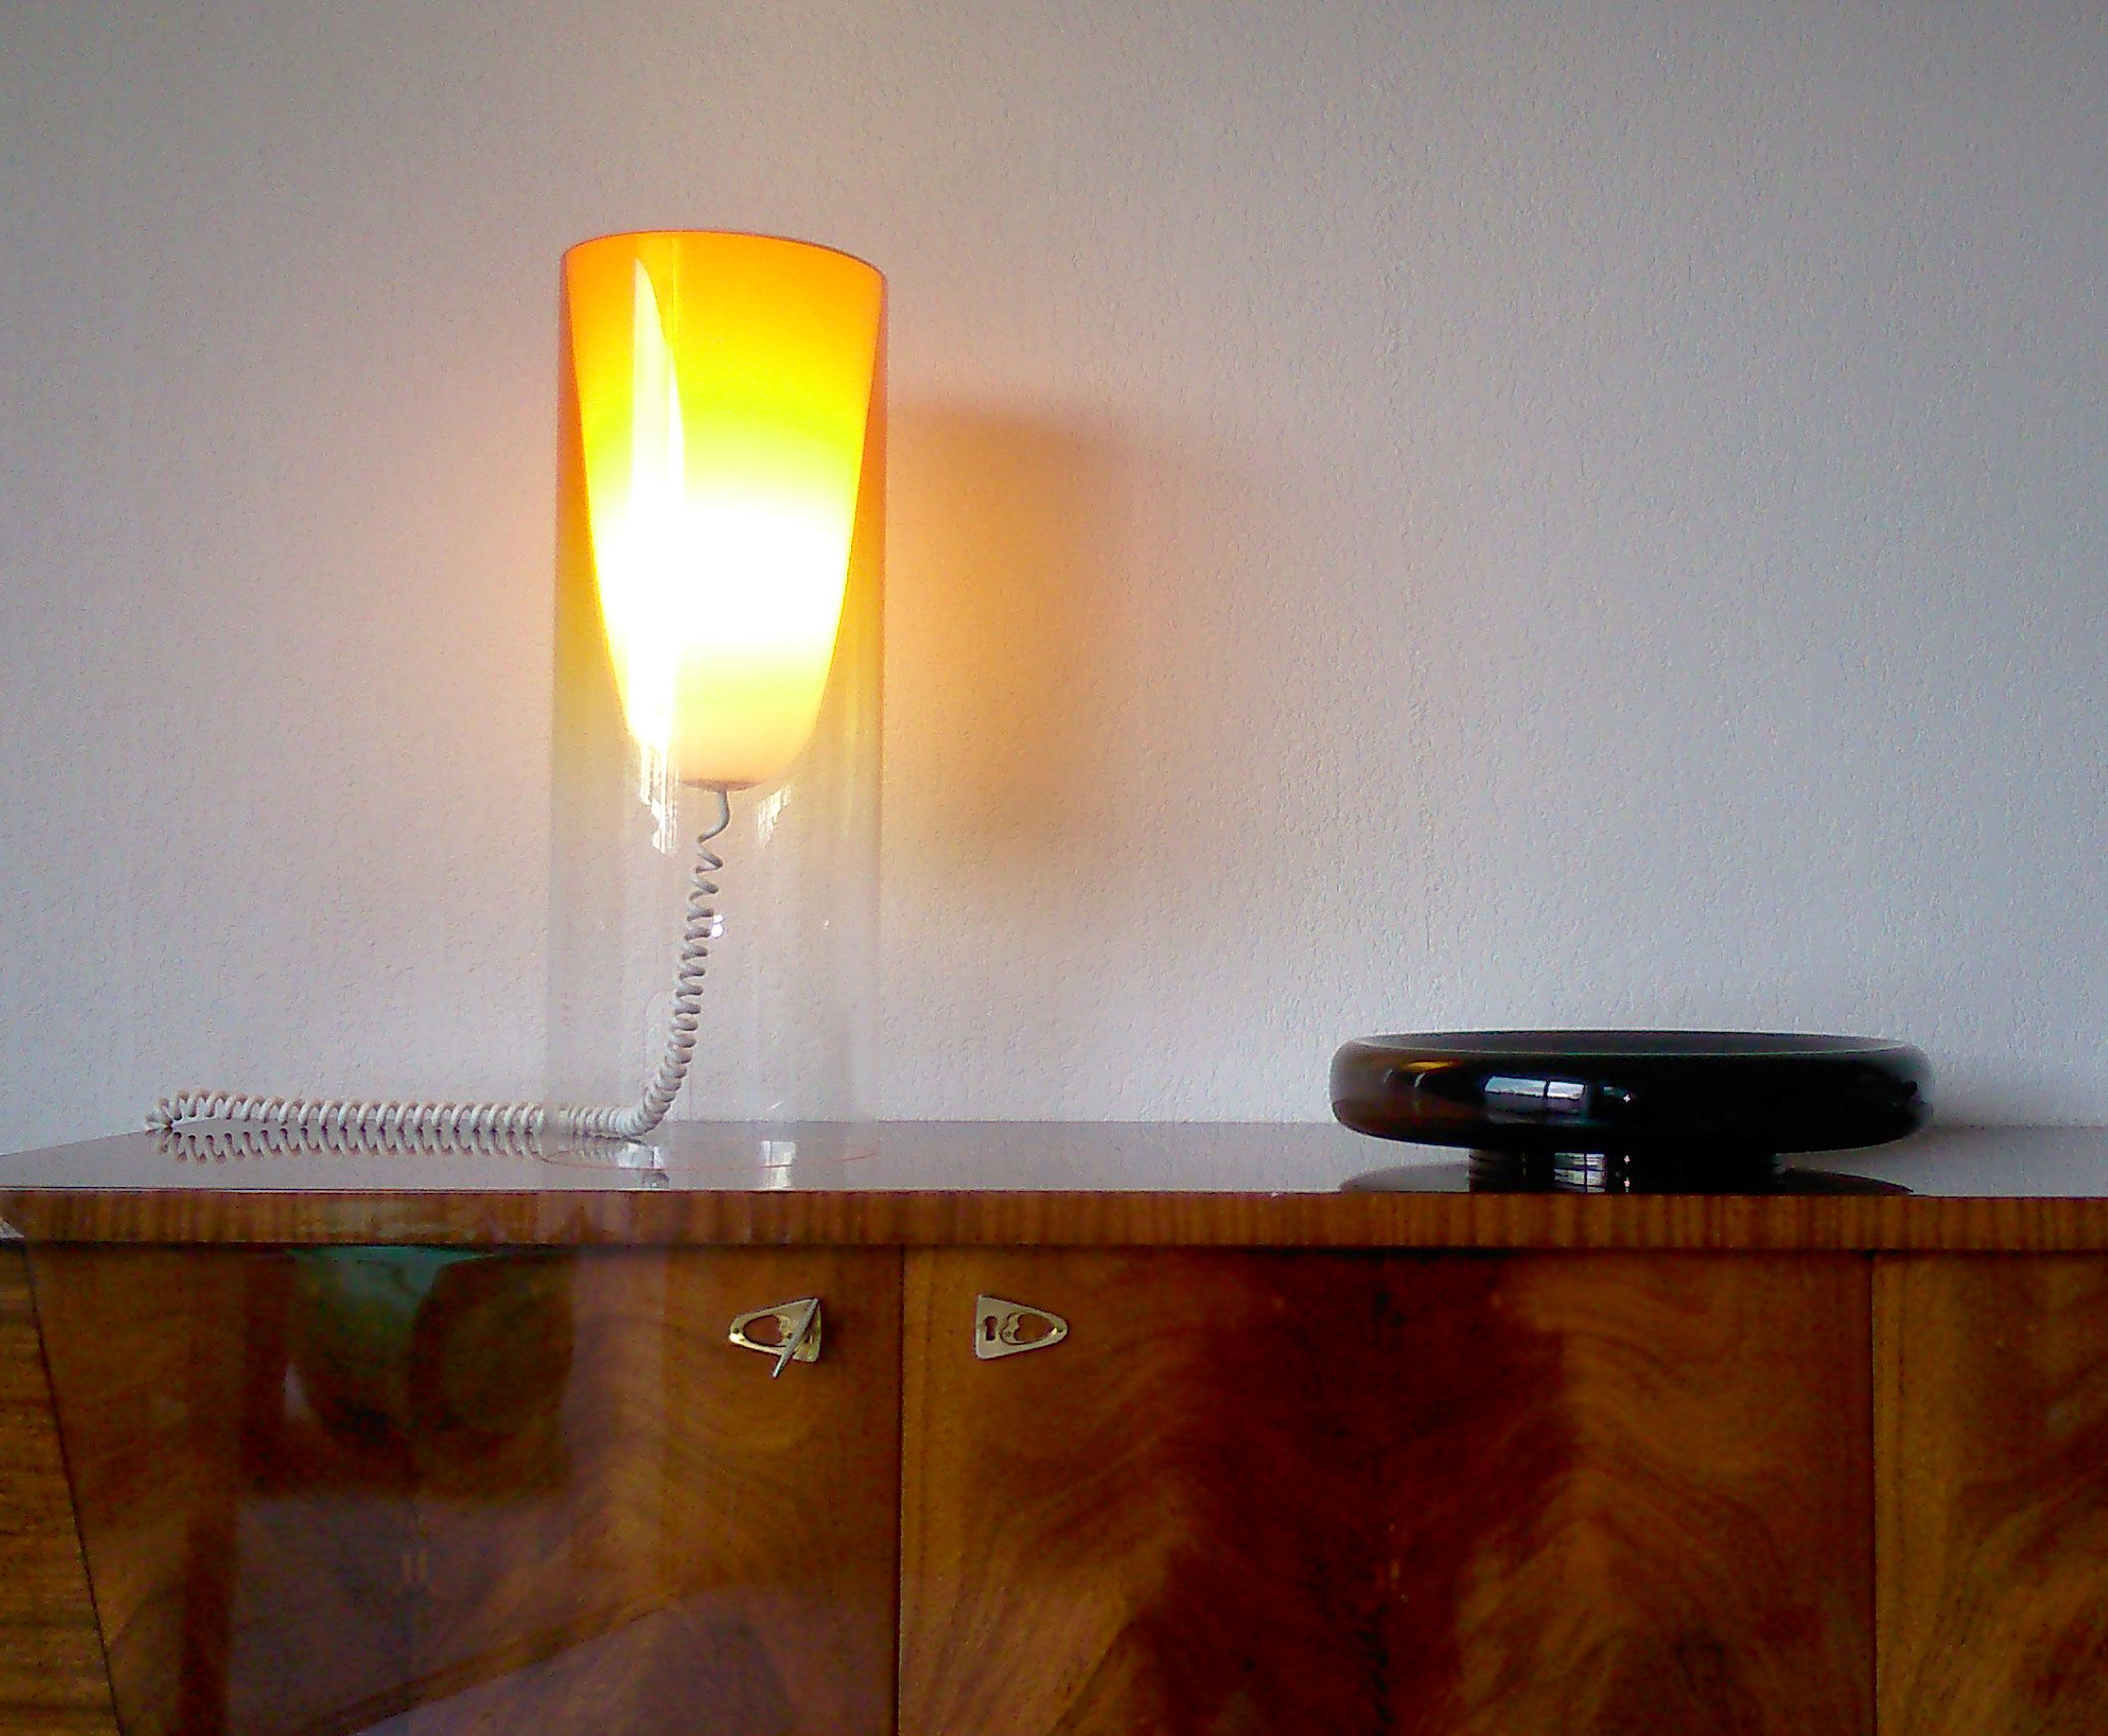 Lampe Toobe lampe kartell design Retrouvez Toobe ici